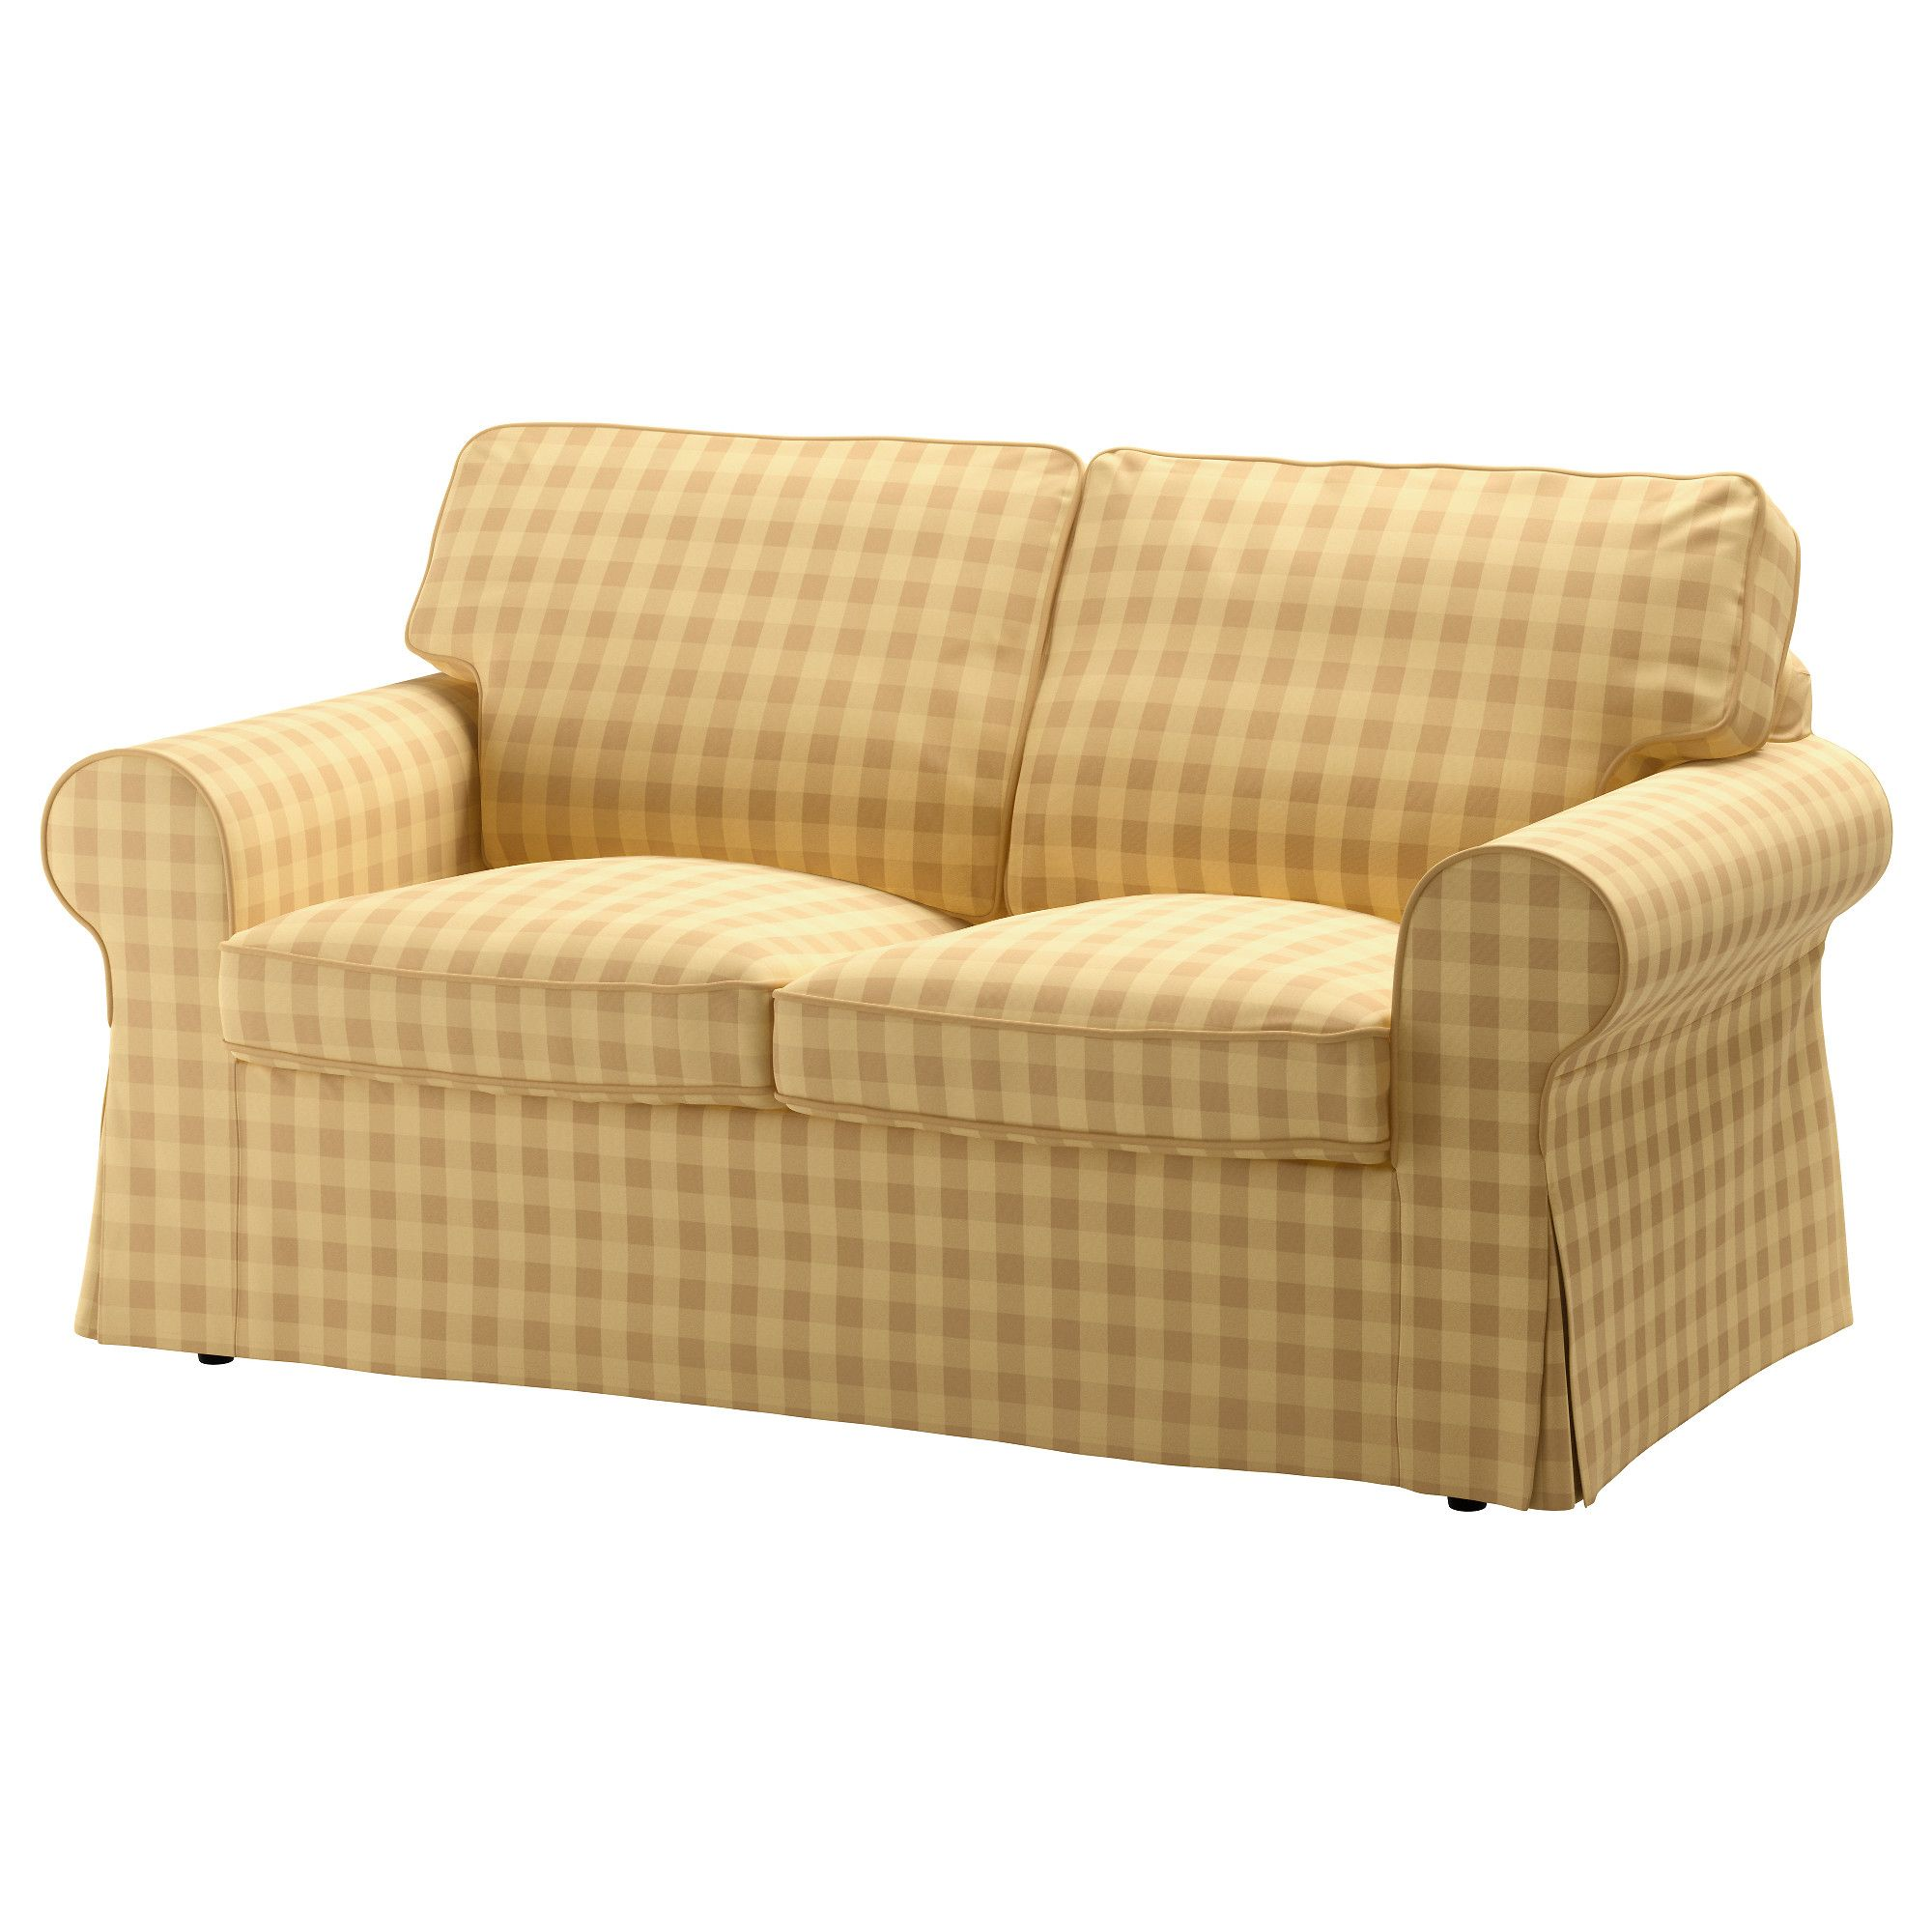 Groovy Ektorp Loveseat Cover Skaftarp Yellow Guest House Ikea Lamtechconsult Wood Chair Design Ideas Lamtechconsultcom